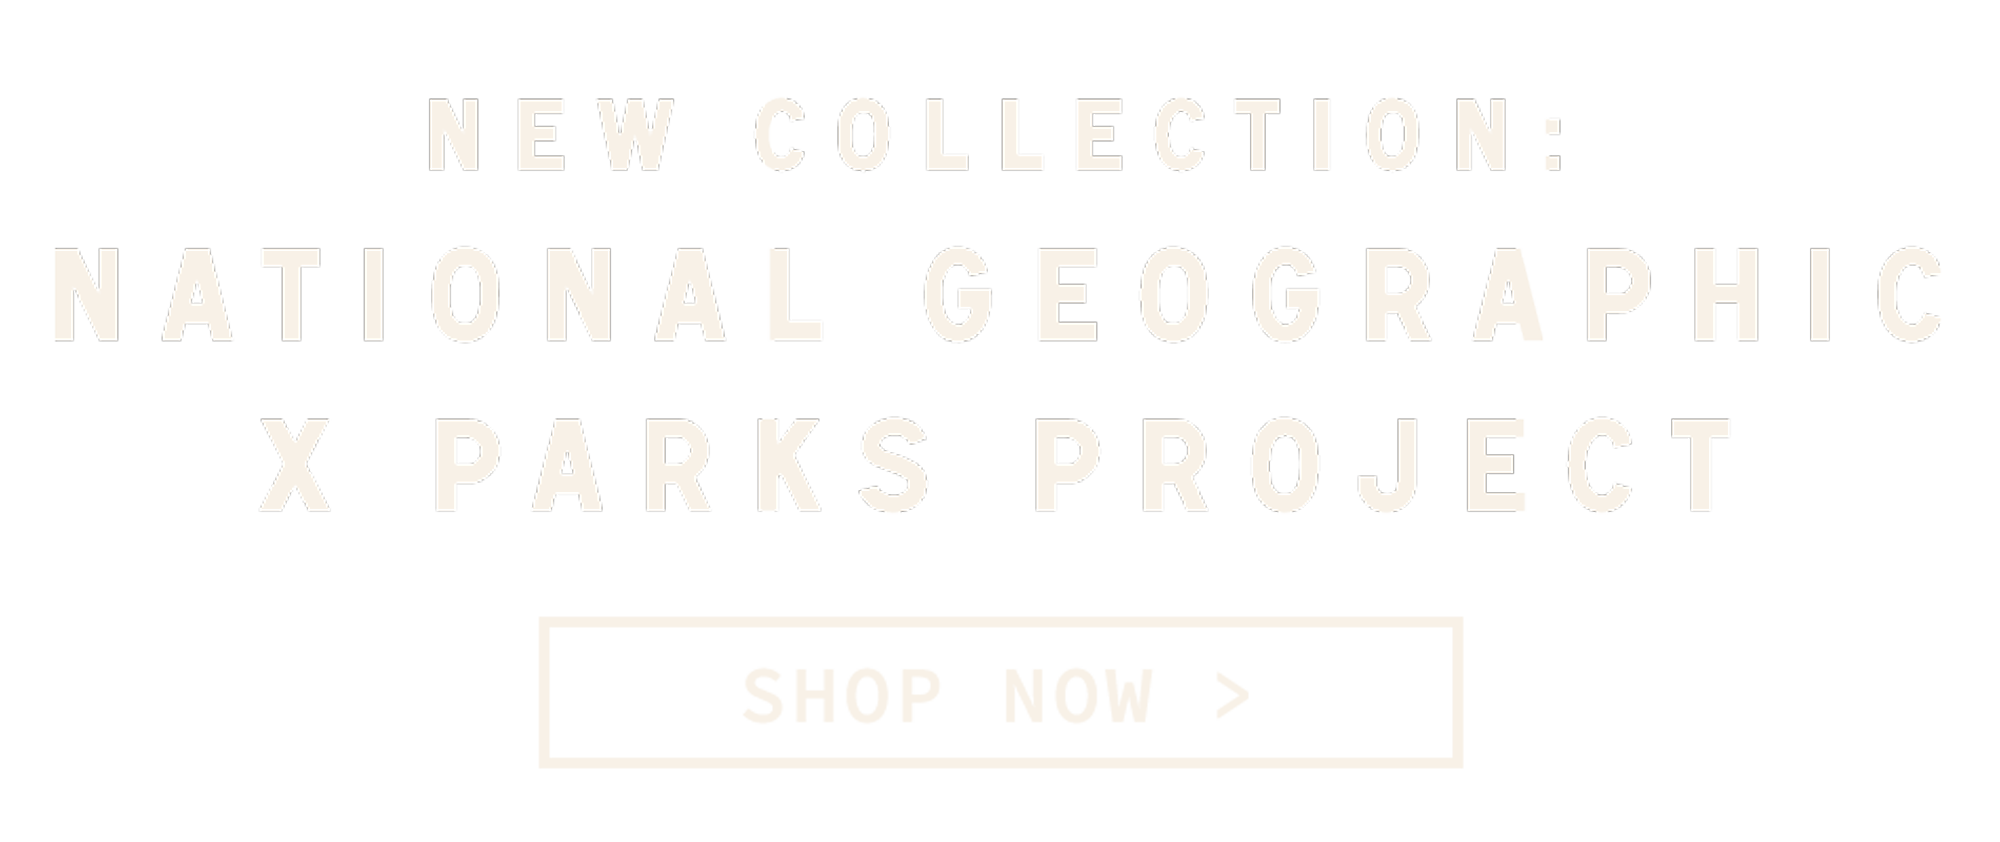 Parks Project | National Geographic